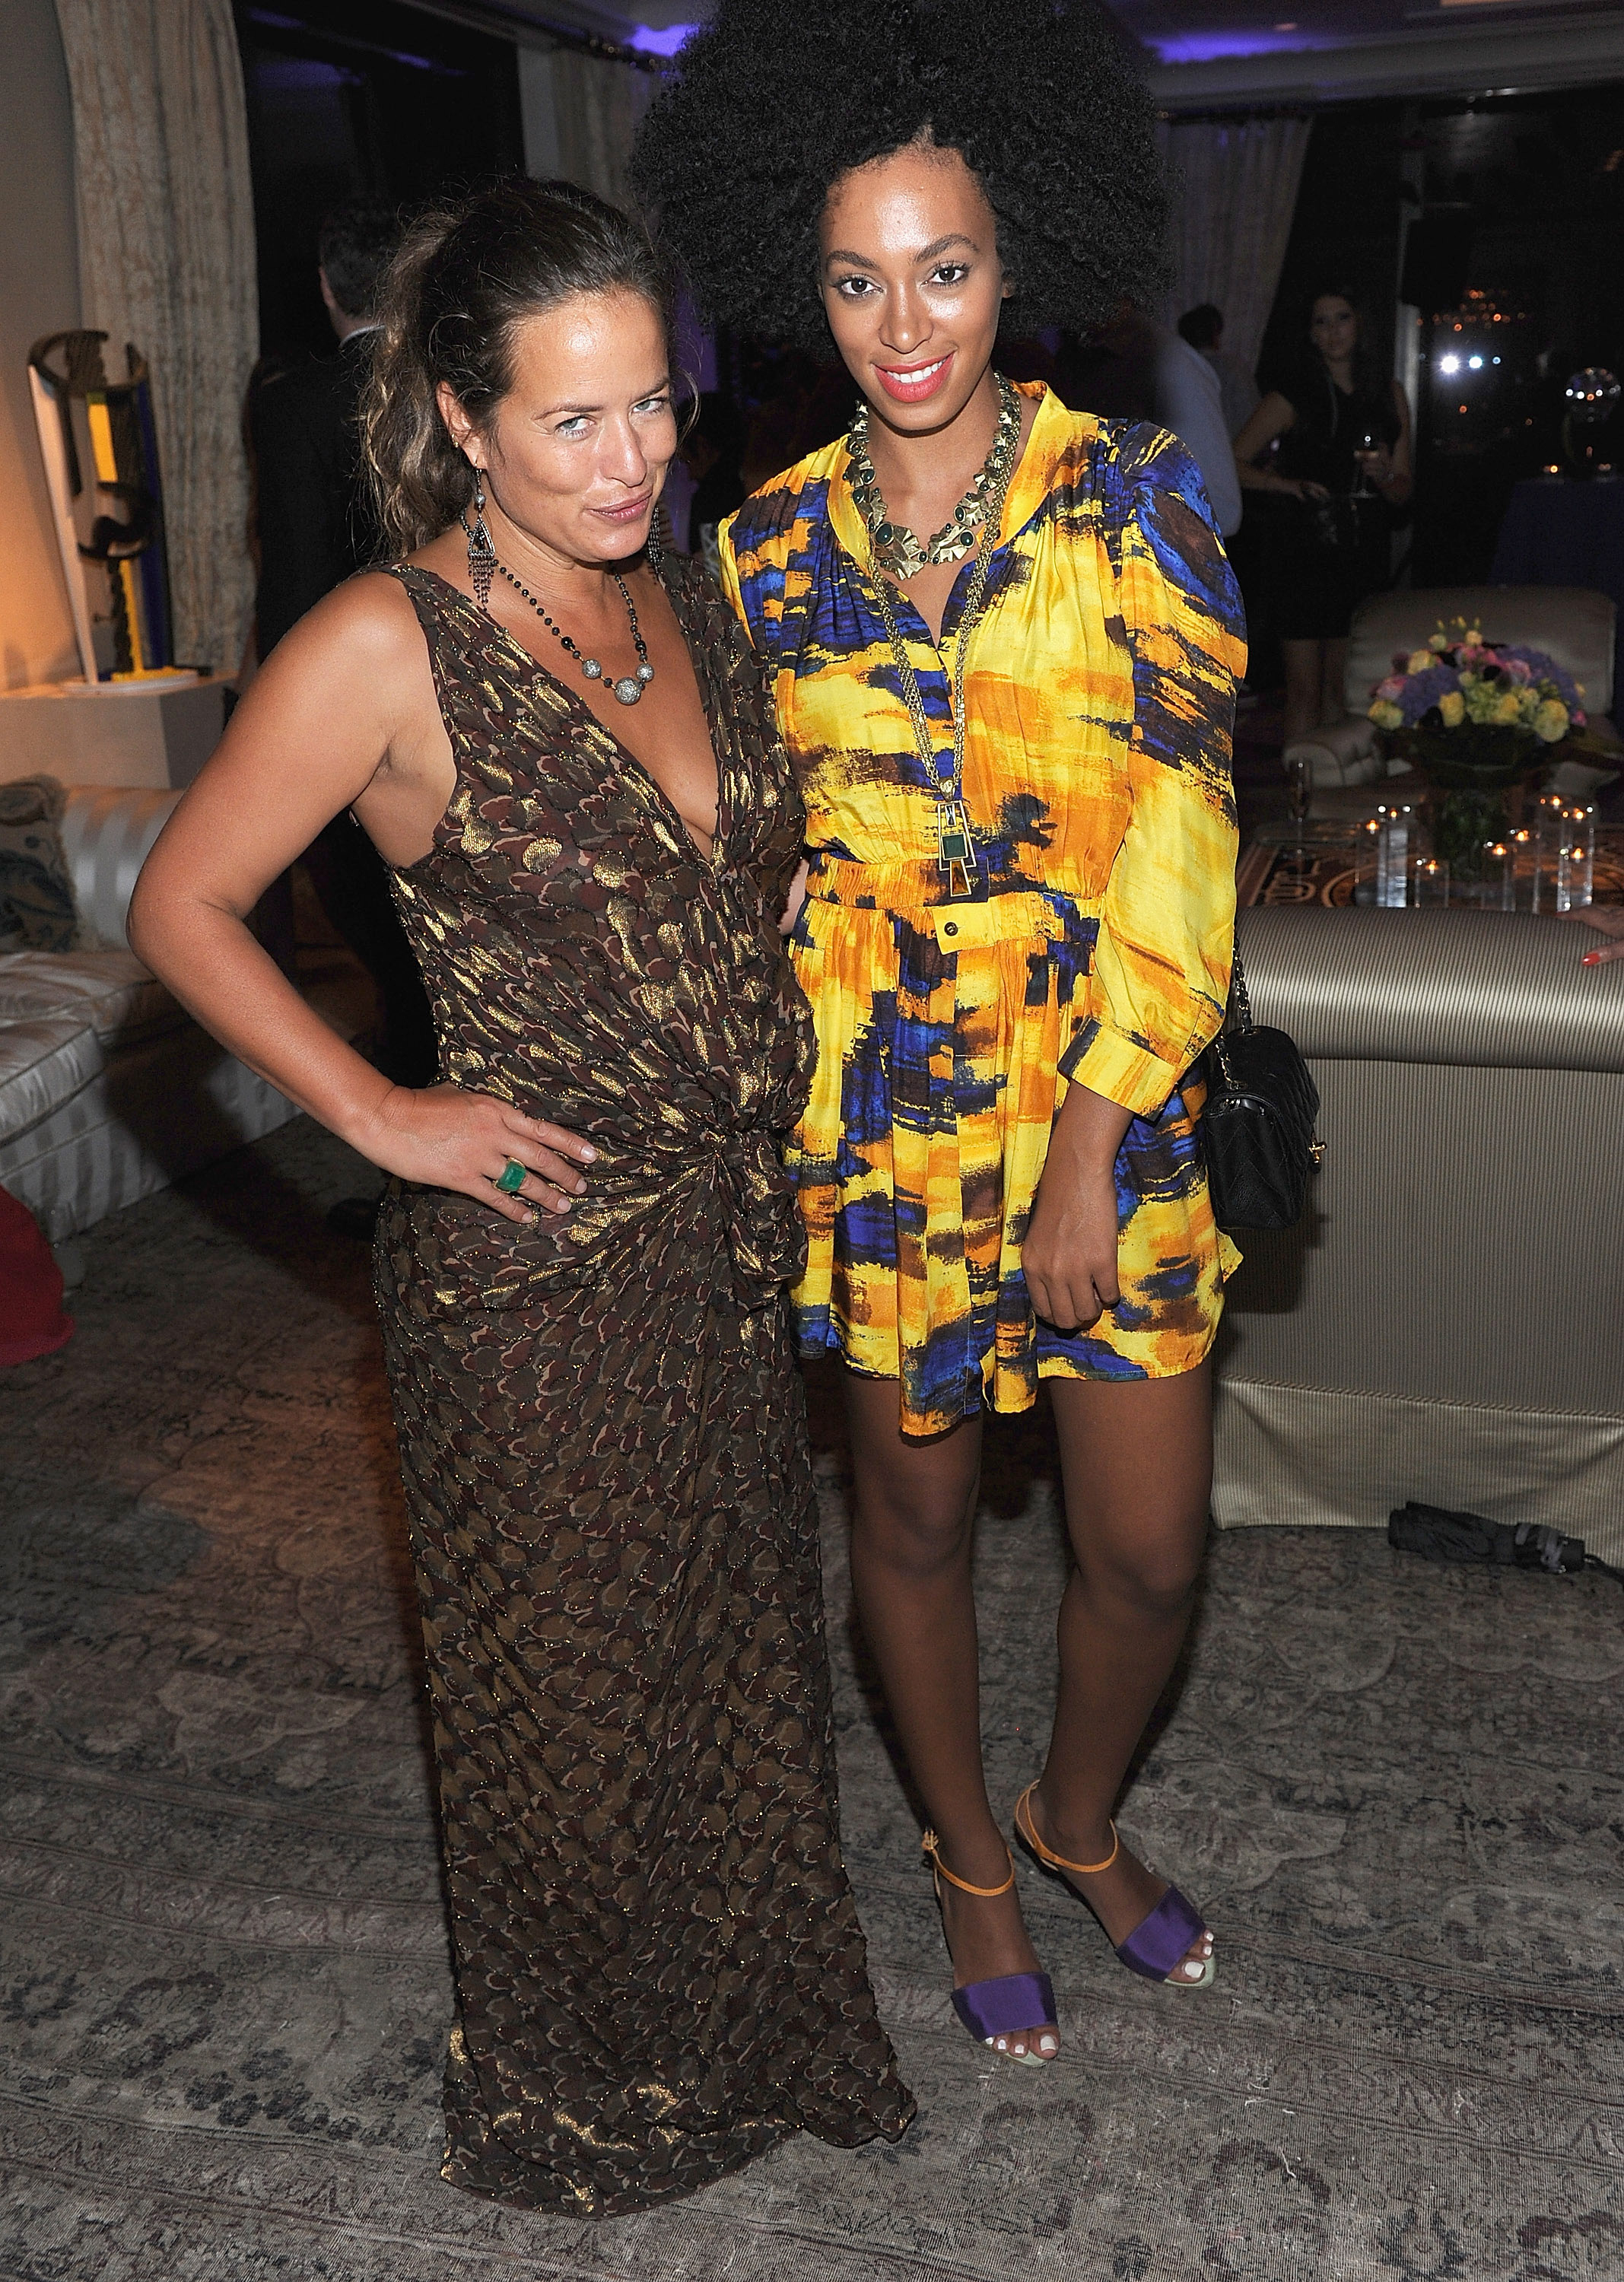 Jade Jagger and Solange Knowles